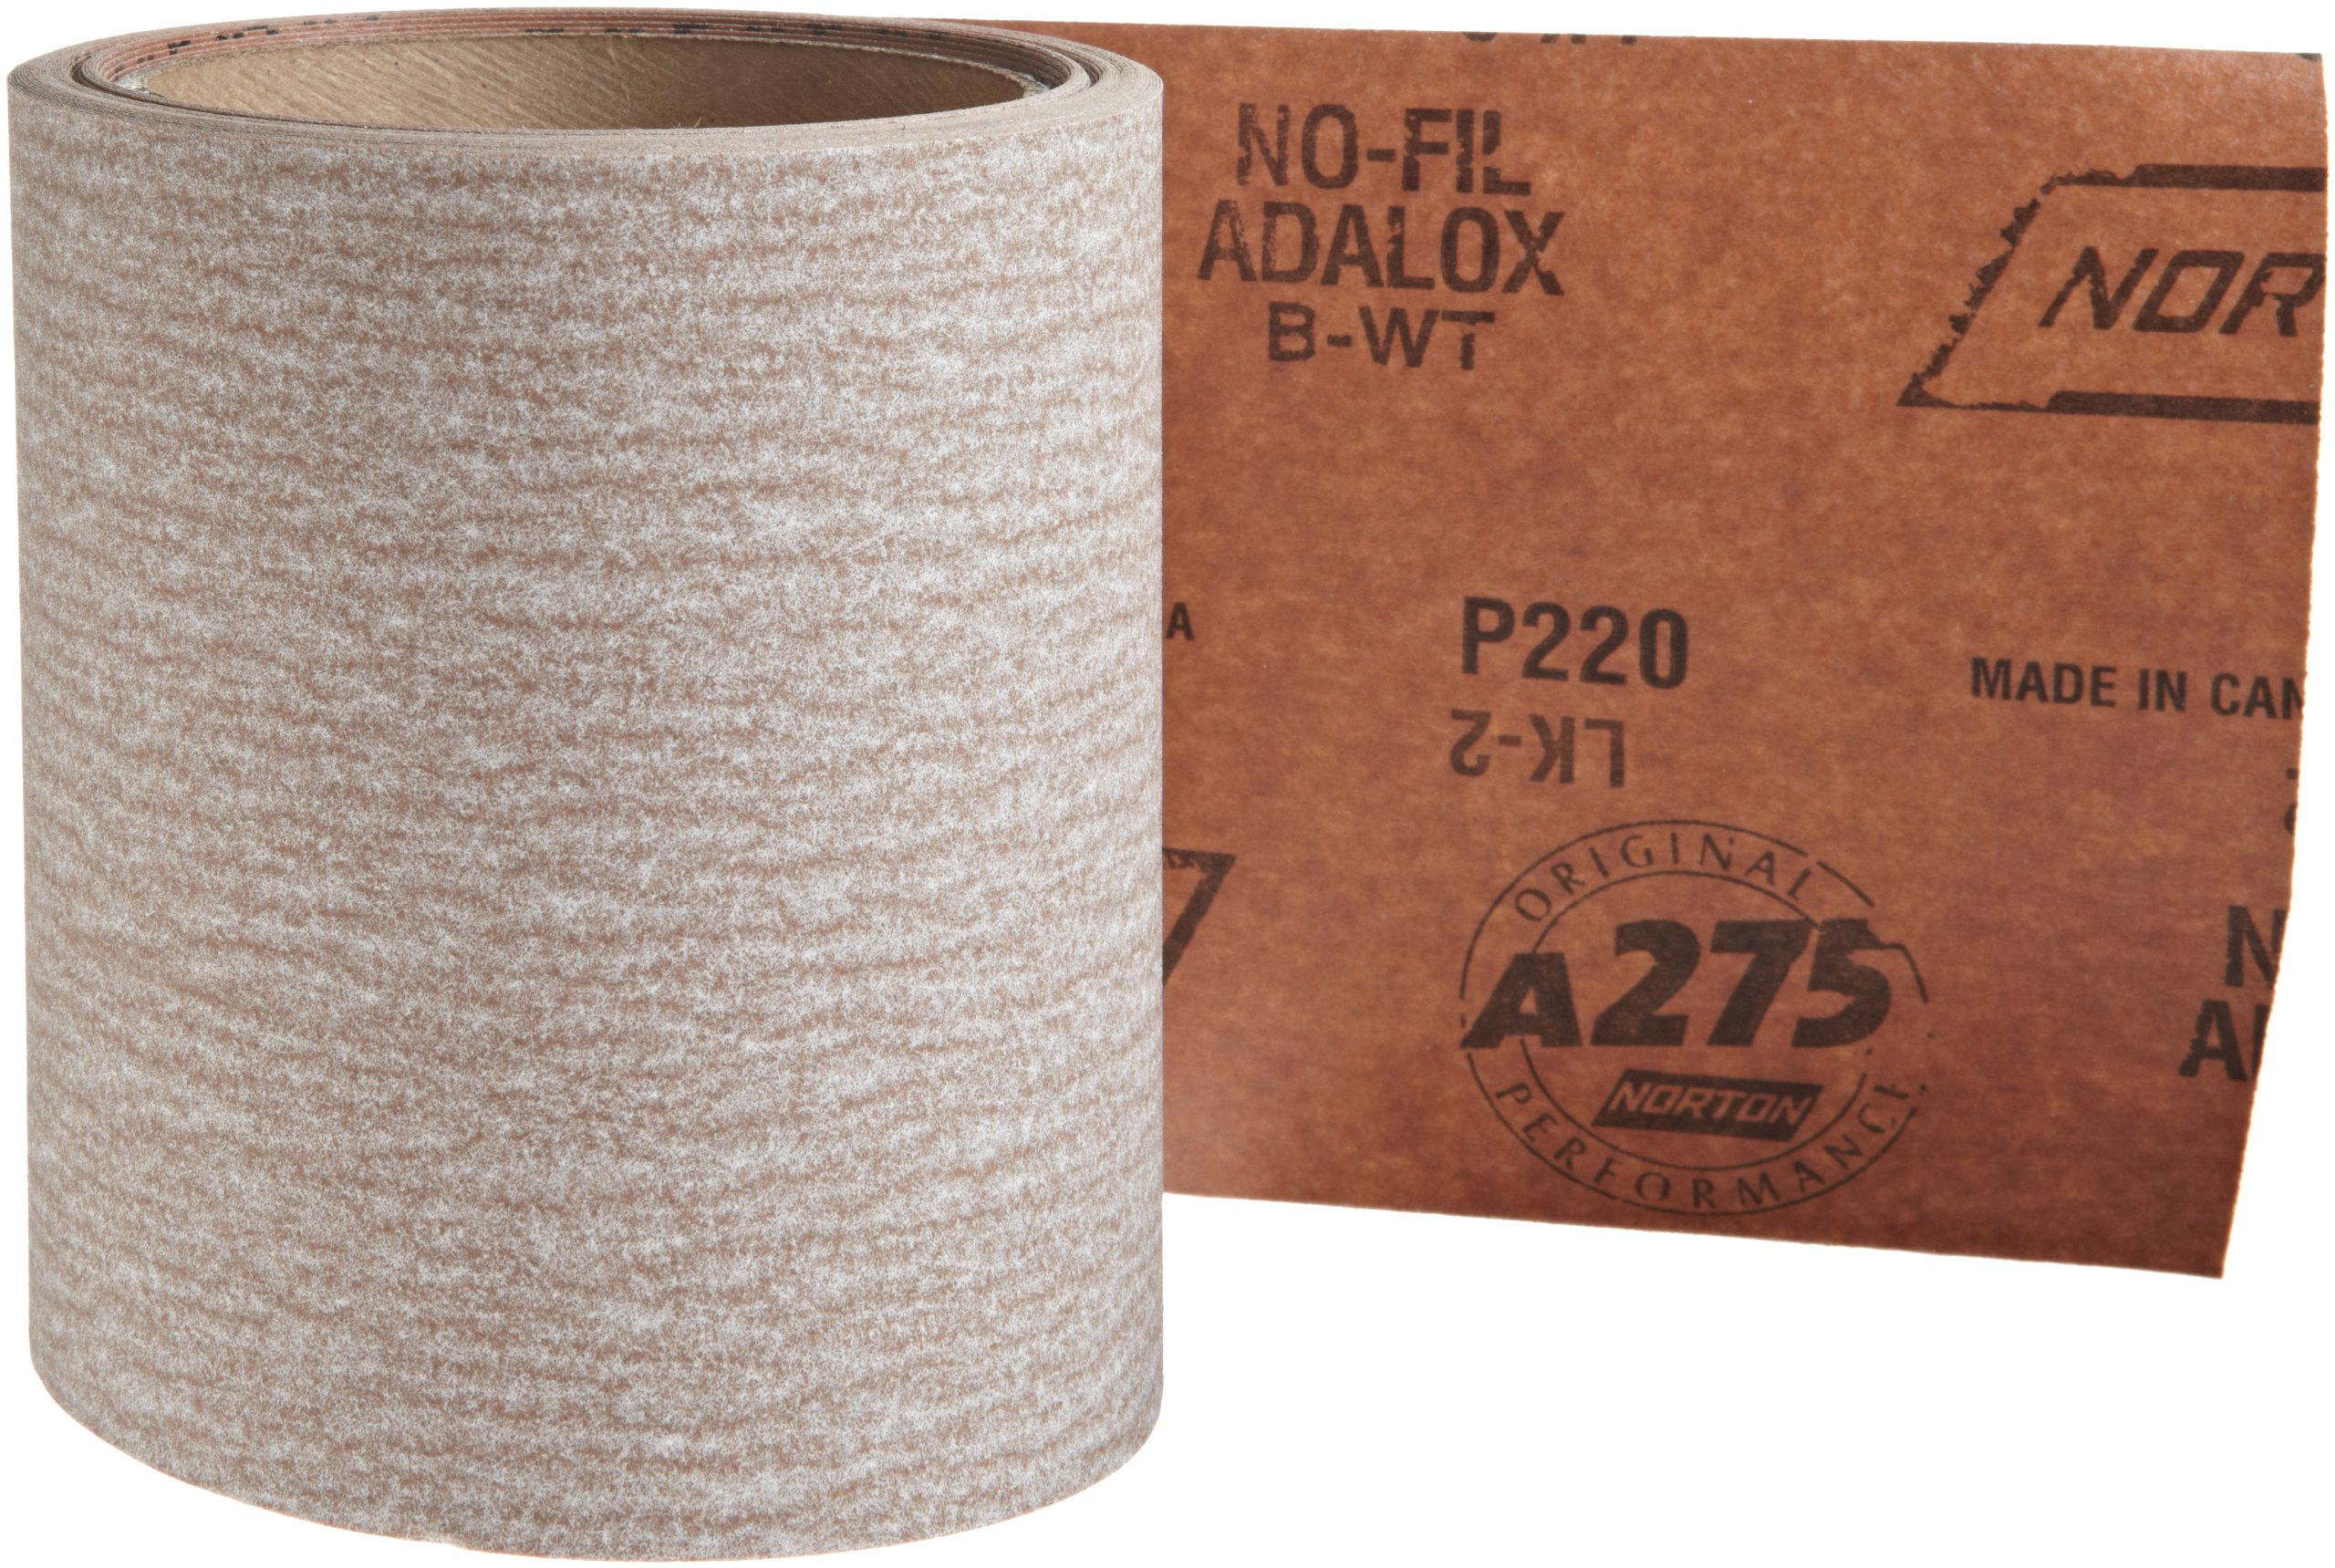 Norton A275 No-Fil Adalox Abrasive Roll, Paper Backing, Pressure Sensitive Adhesive, Aluminum Oxide, Waterproof, Roll 4-1/2'' Width x 10yd Length, Grit 220 (Pack of 1)